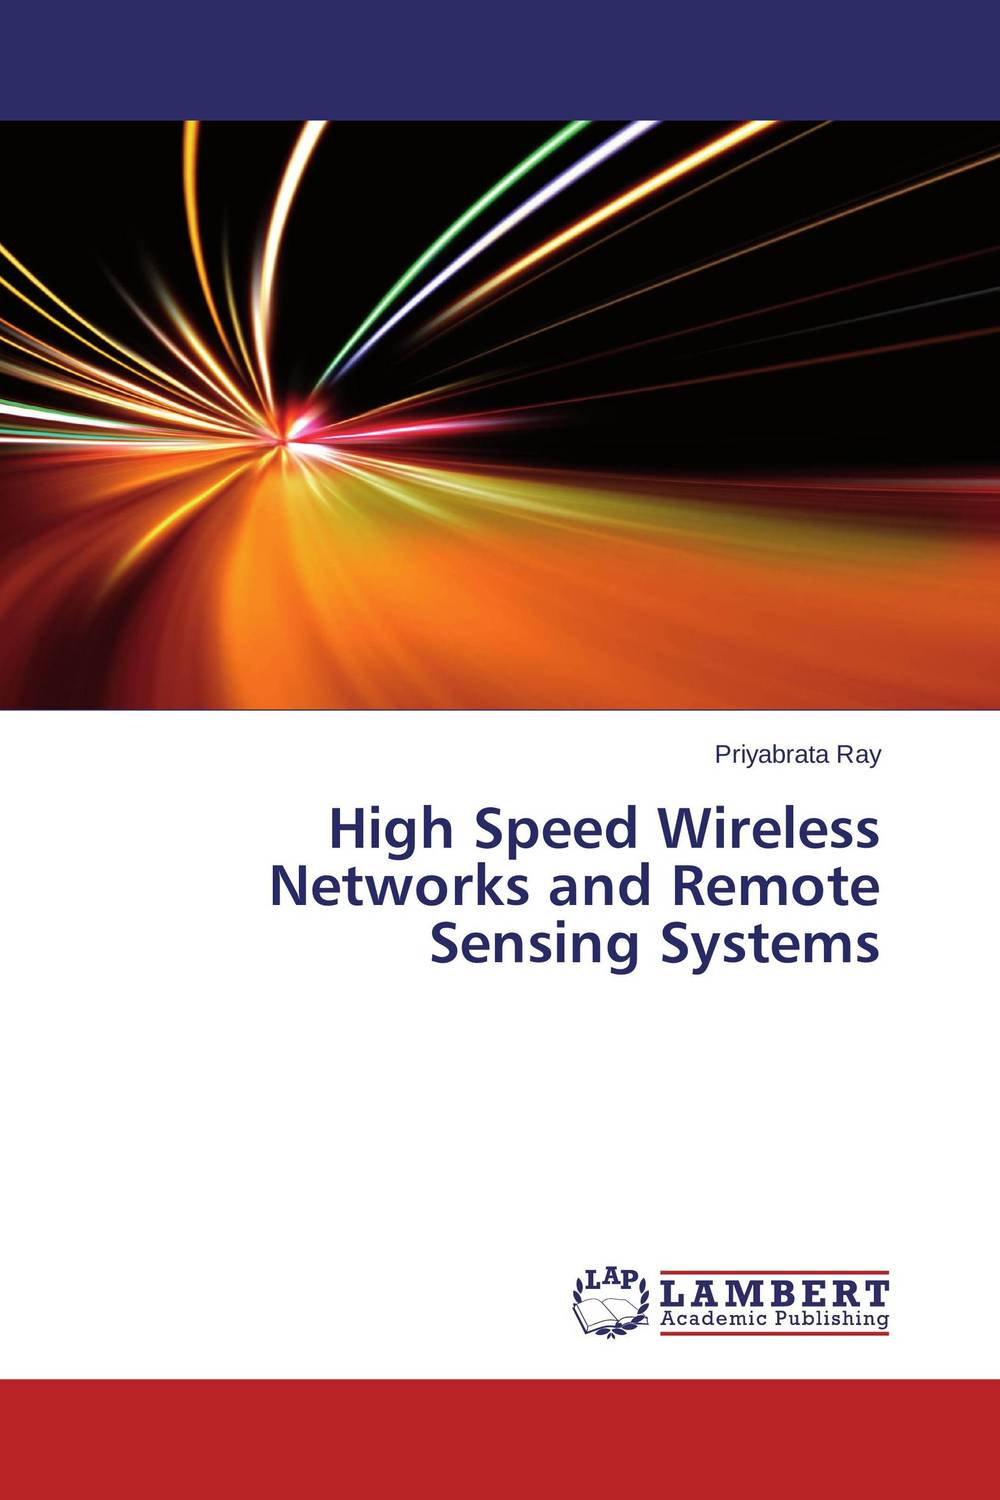 High Speed Wireless Networks and Remote Sensing Systems